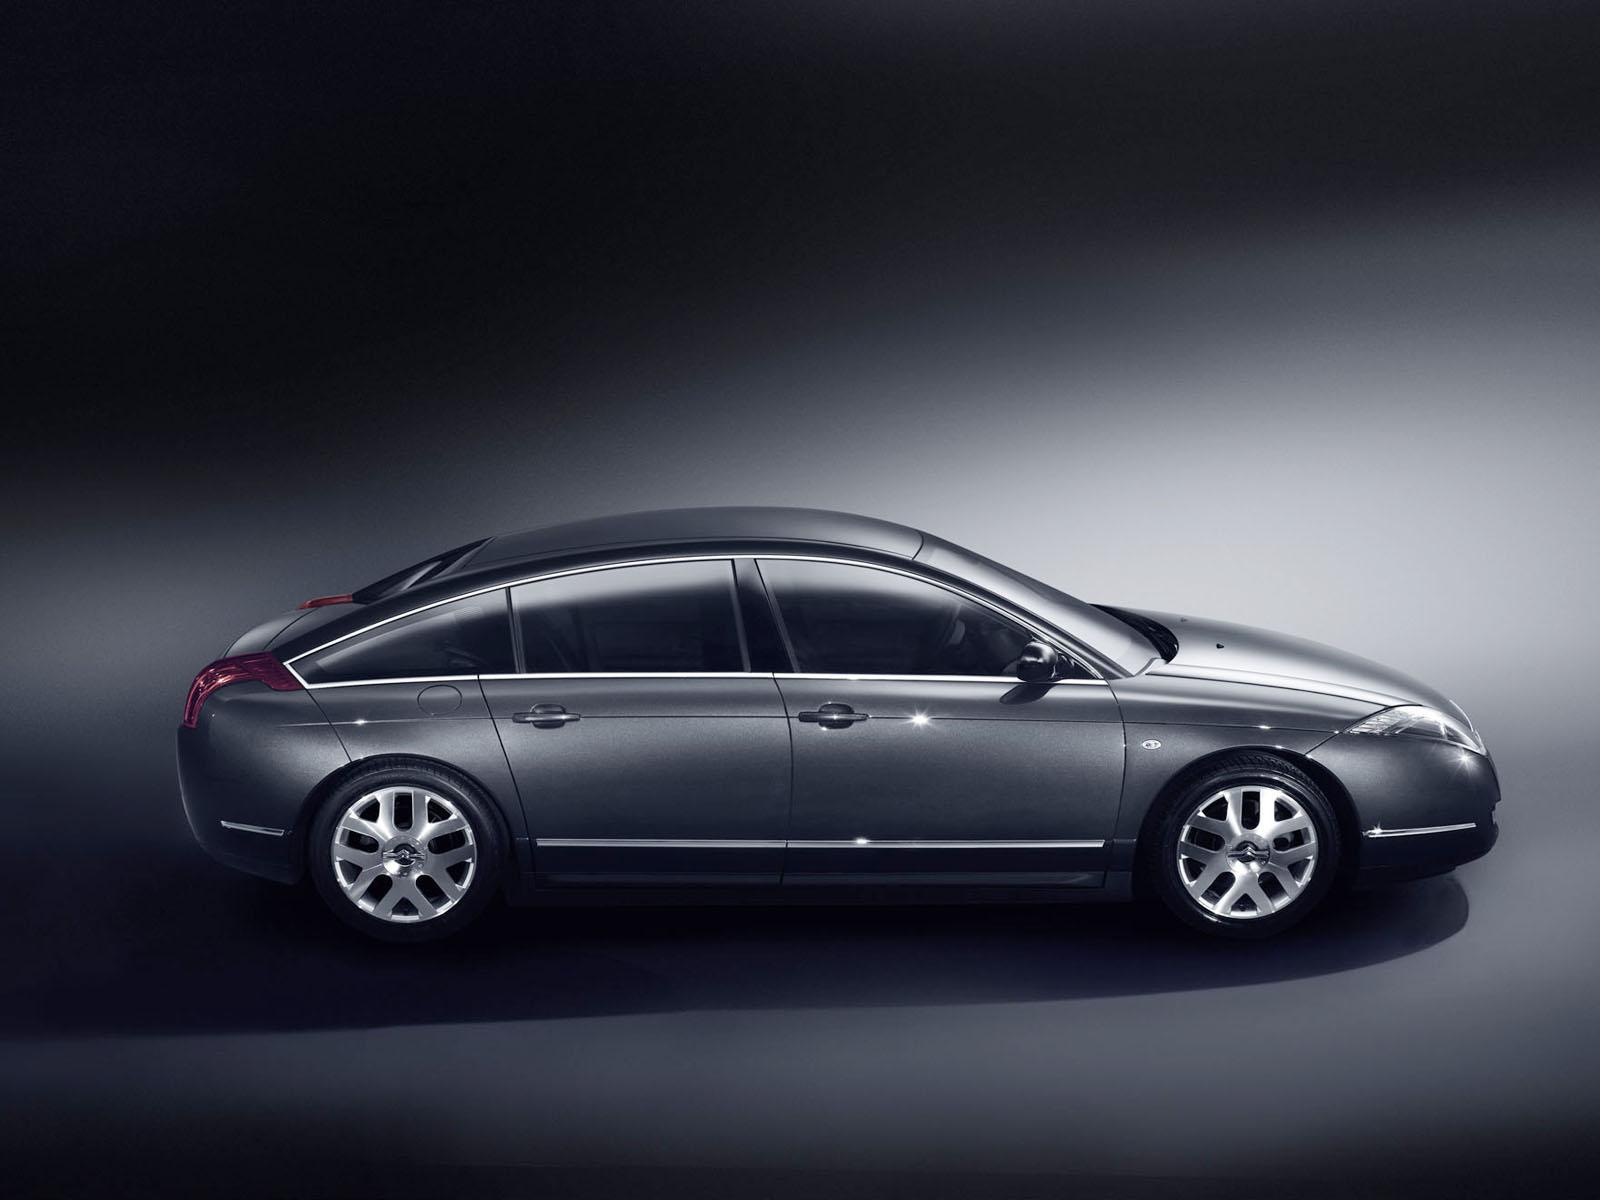 C6 V6 HDI exclusive του 2005, προφίλ